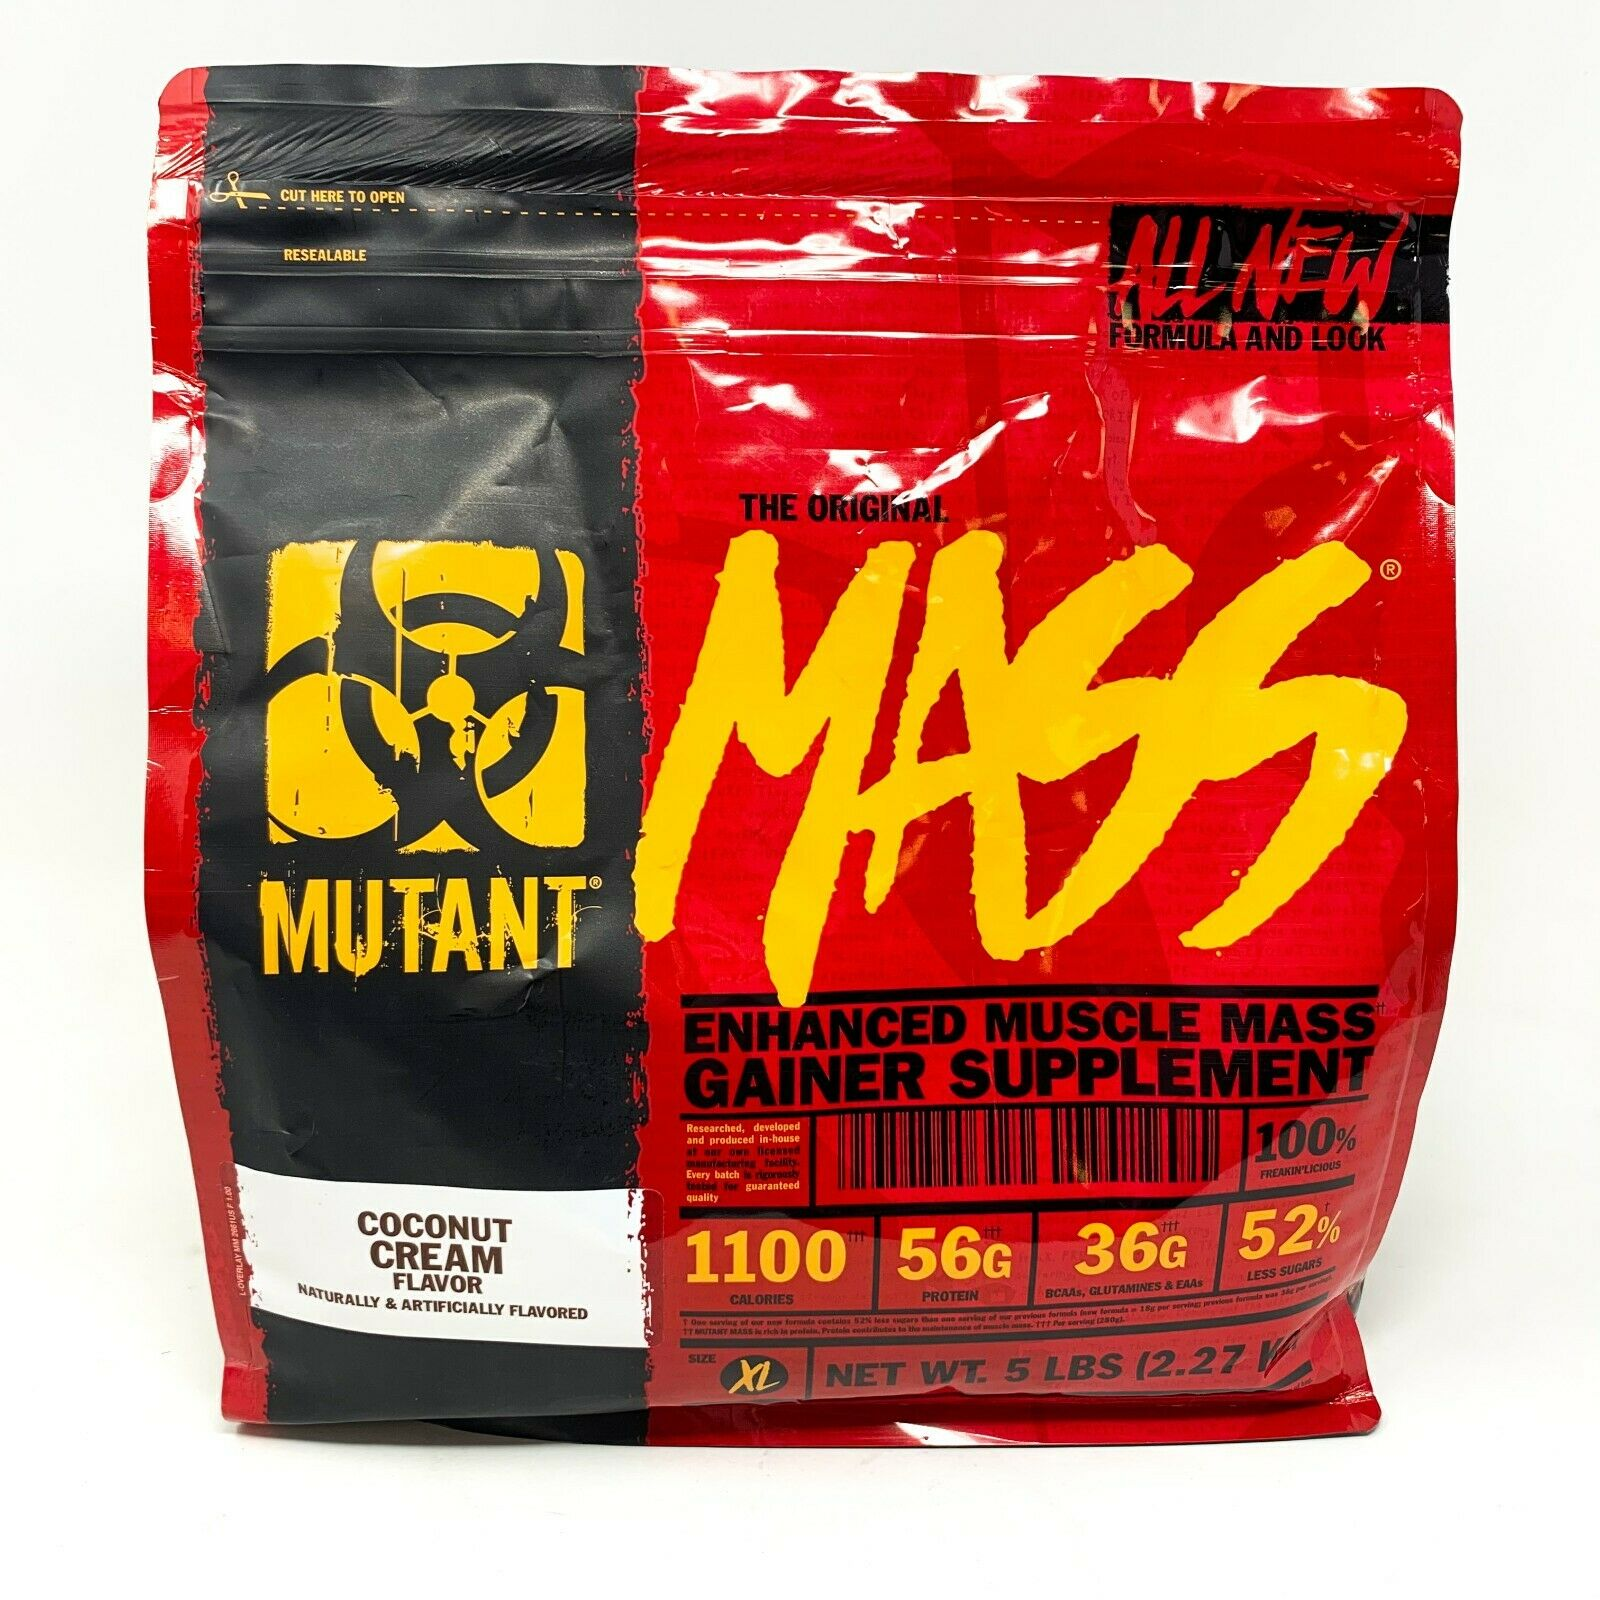 Mutant MASS 5lb Lean Weight Gainer Post-Workout Protein Powd